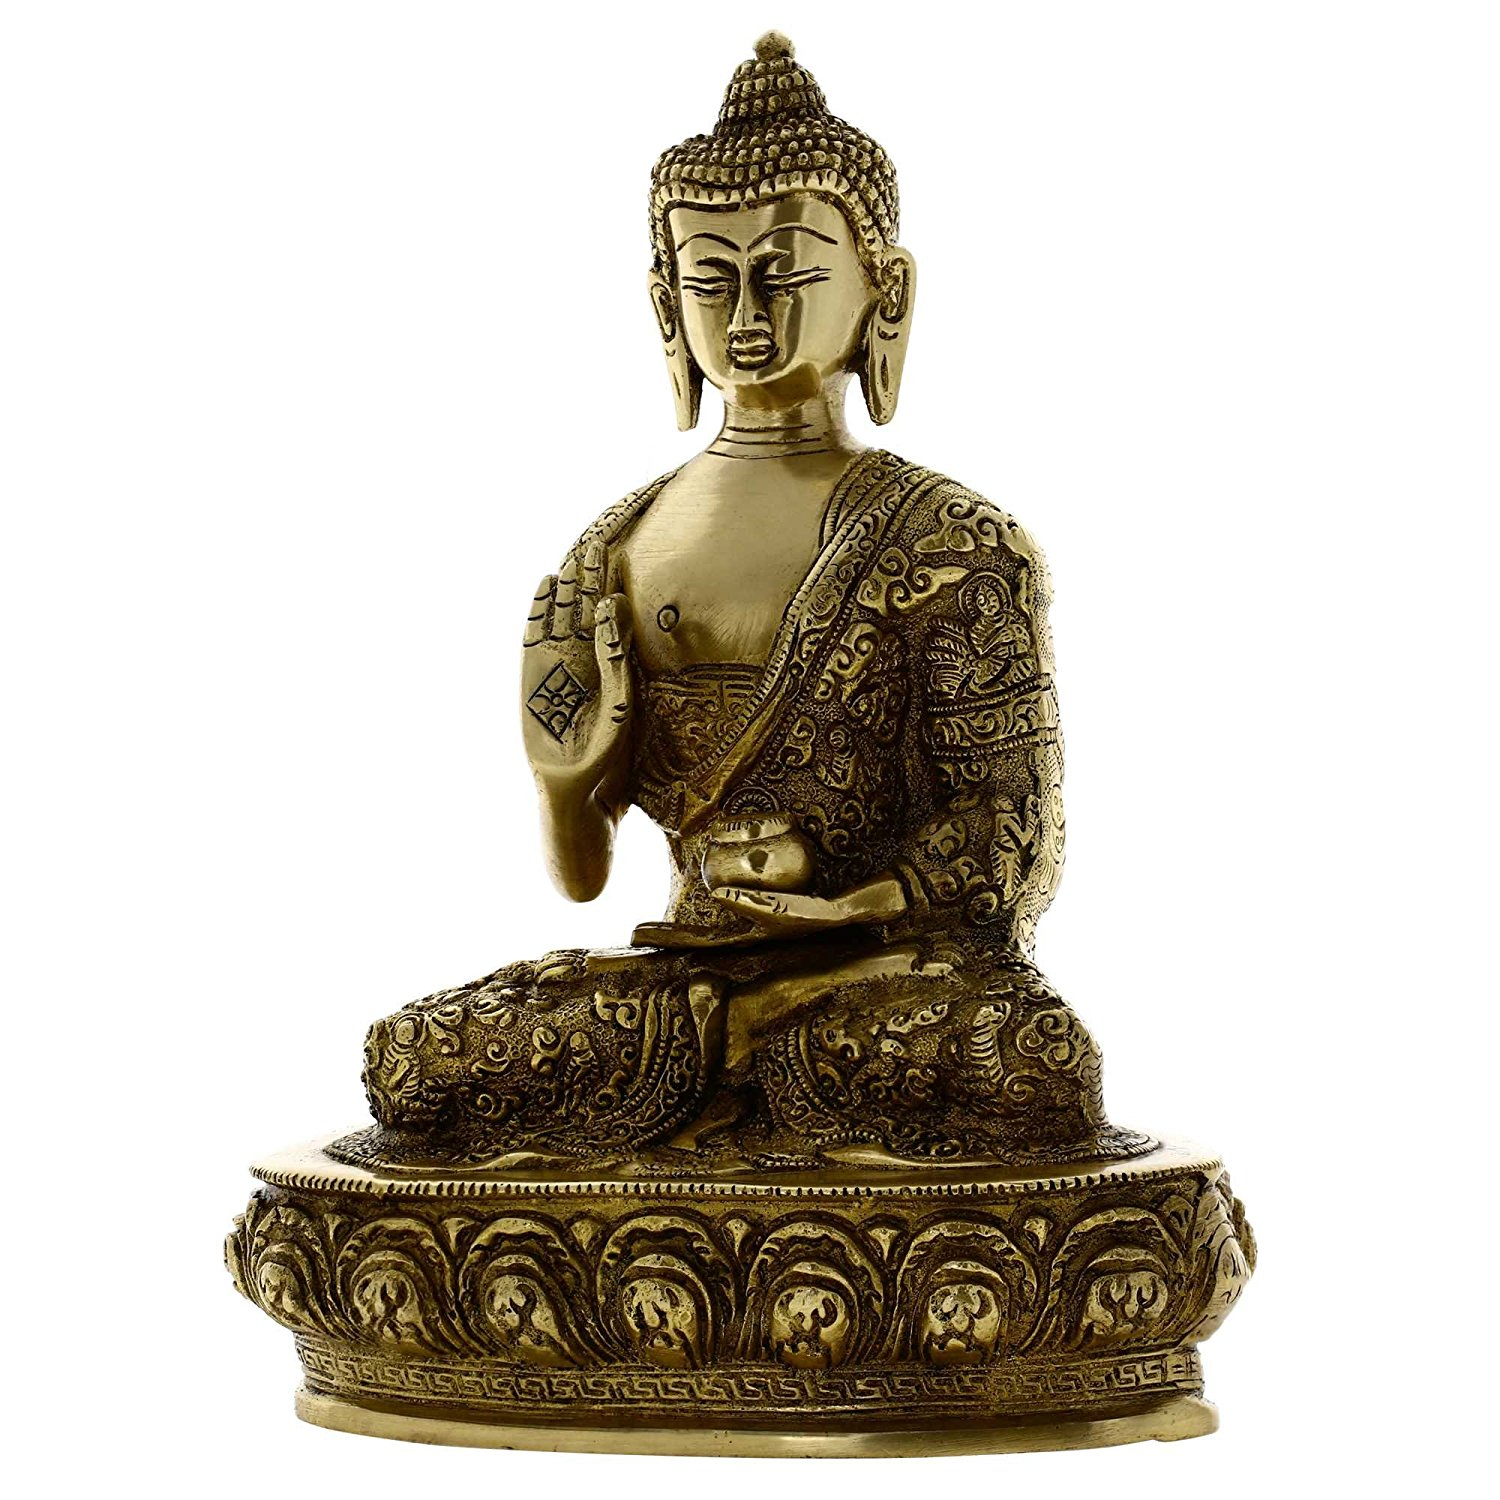 greetings statues meditiating in online n gifts low show buy home india prices decor amazon at gautam dp buddha piece